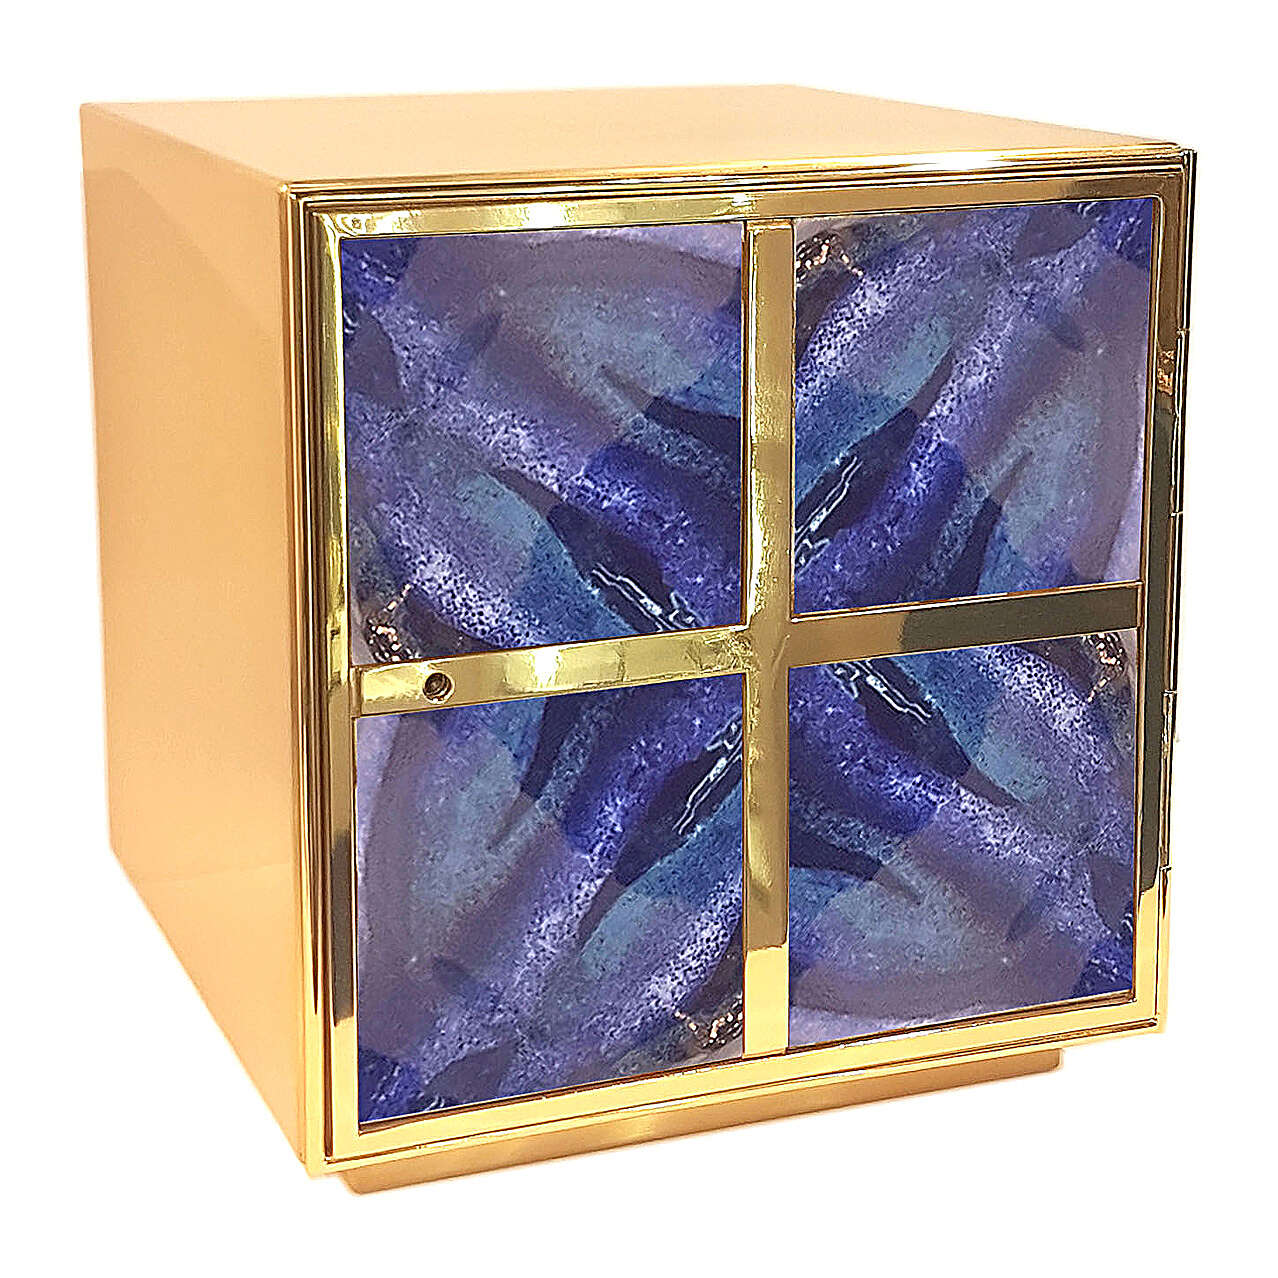 Enamelled light blue tabernacle gold plated brass 10 in 4